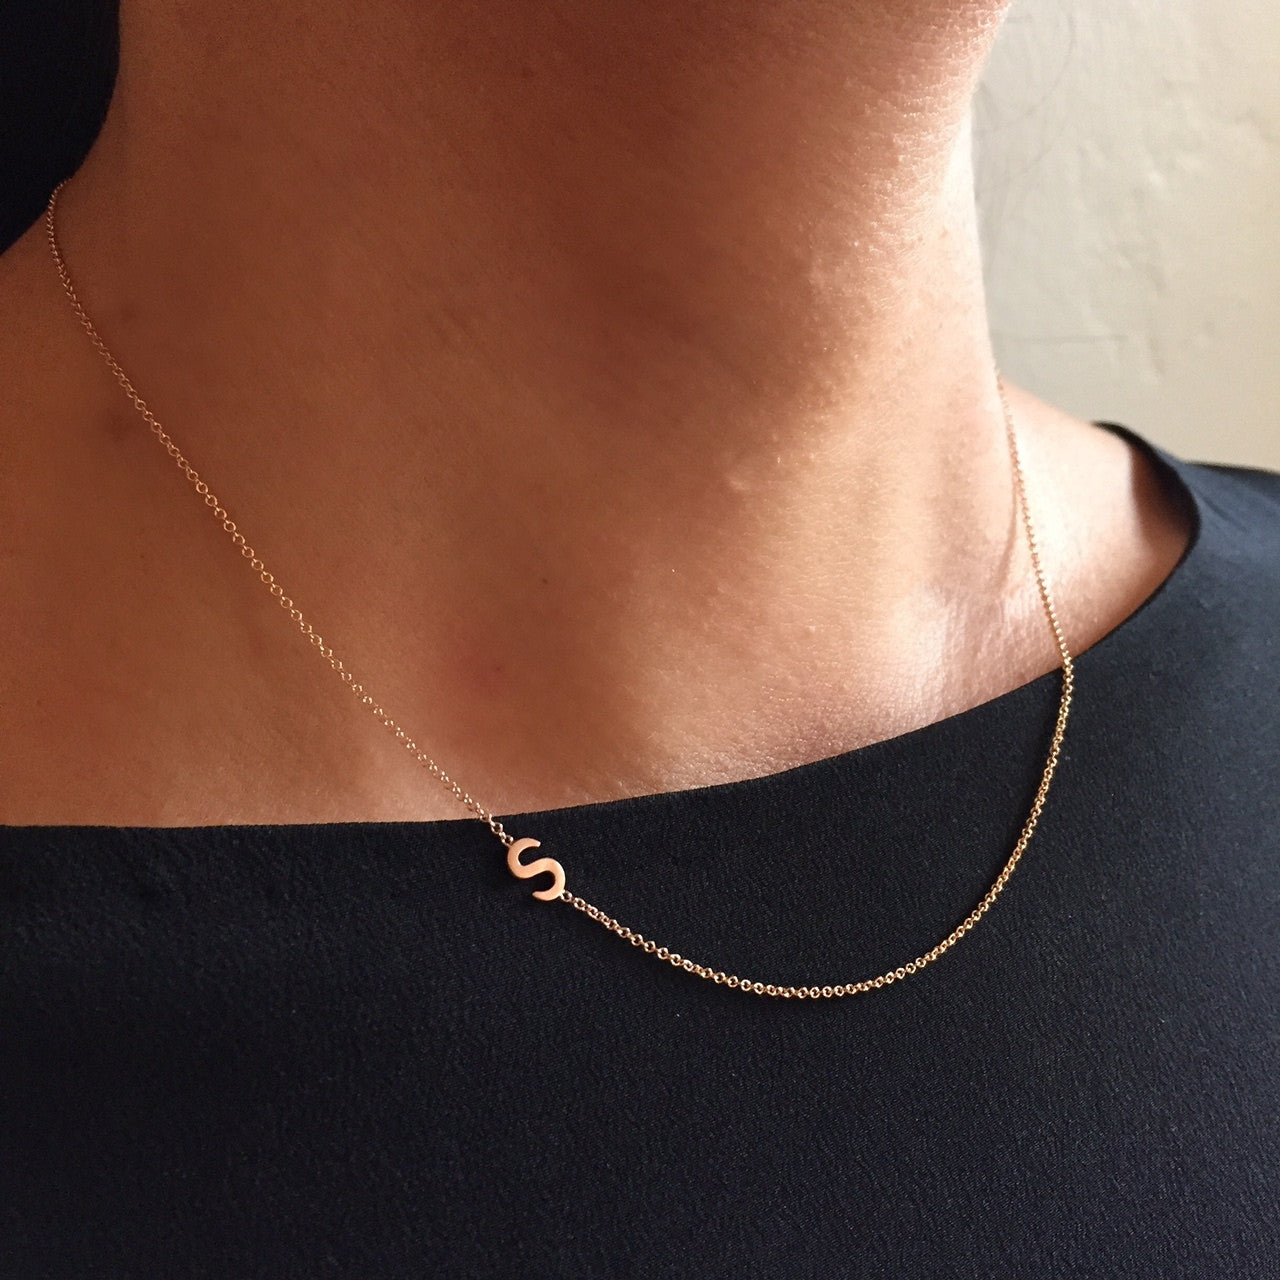 Initial Necklace - Asymmetrical